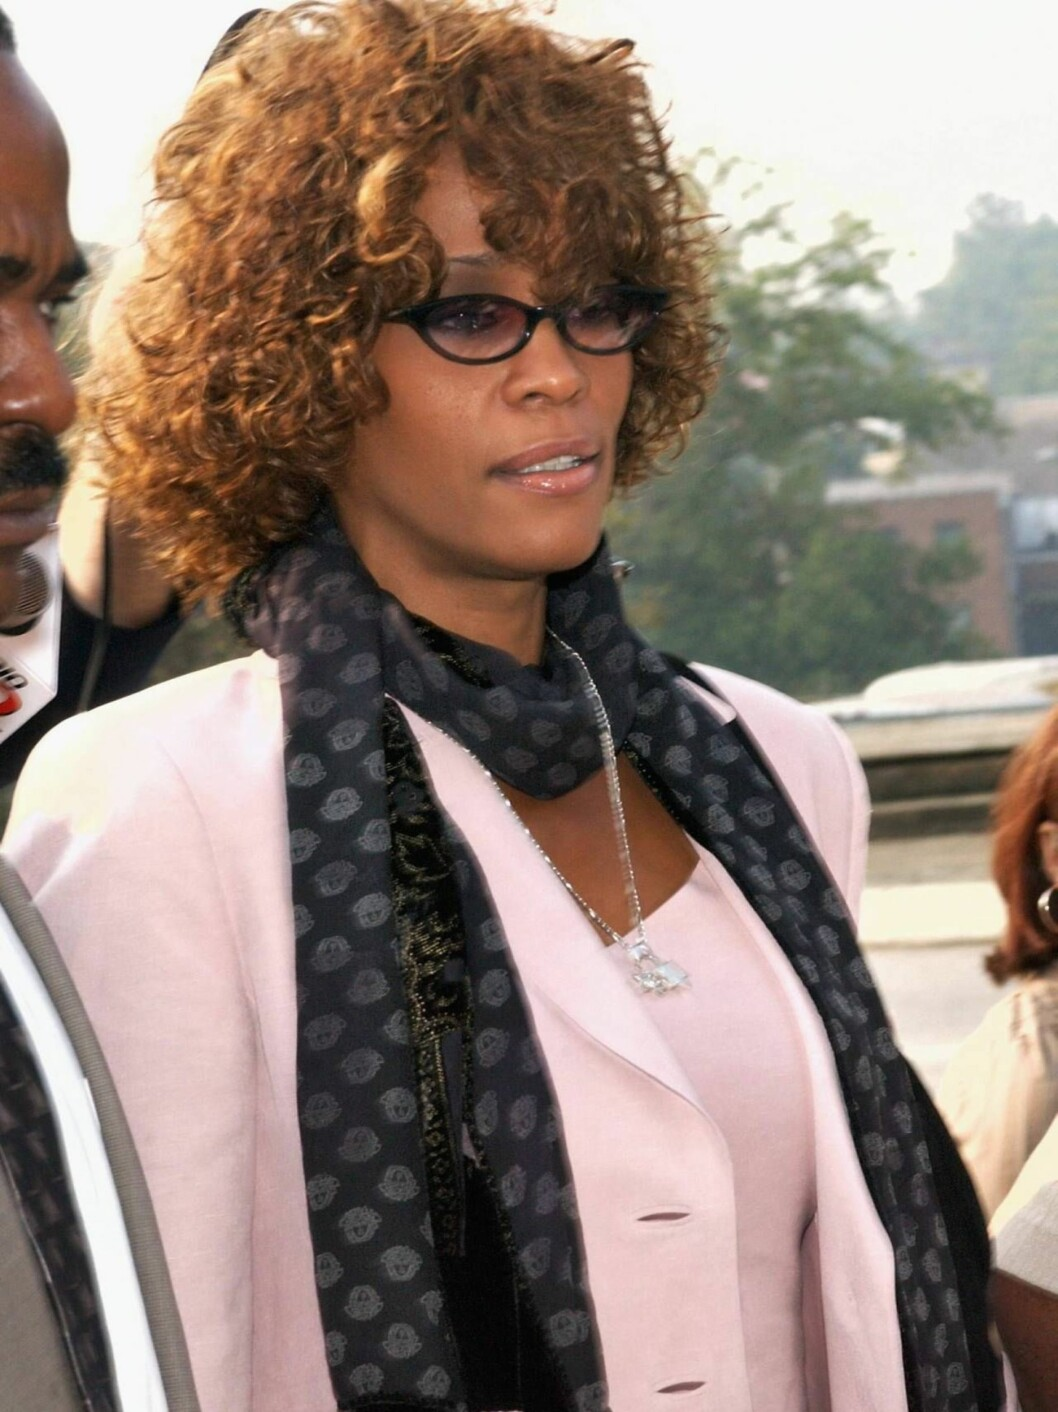 <strong>DECATUR, GA - AUGUST 27:</strong>  Singer Whitney Houston leaves the DeKalb County Courthouse after a probation violation hearing for her husband, singer Bobby Brown on August 27, 2003 in Decatur, Georgia.  Brown was sentenced to 14 days in jail followed by 60 day Foto: All Over Press